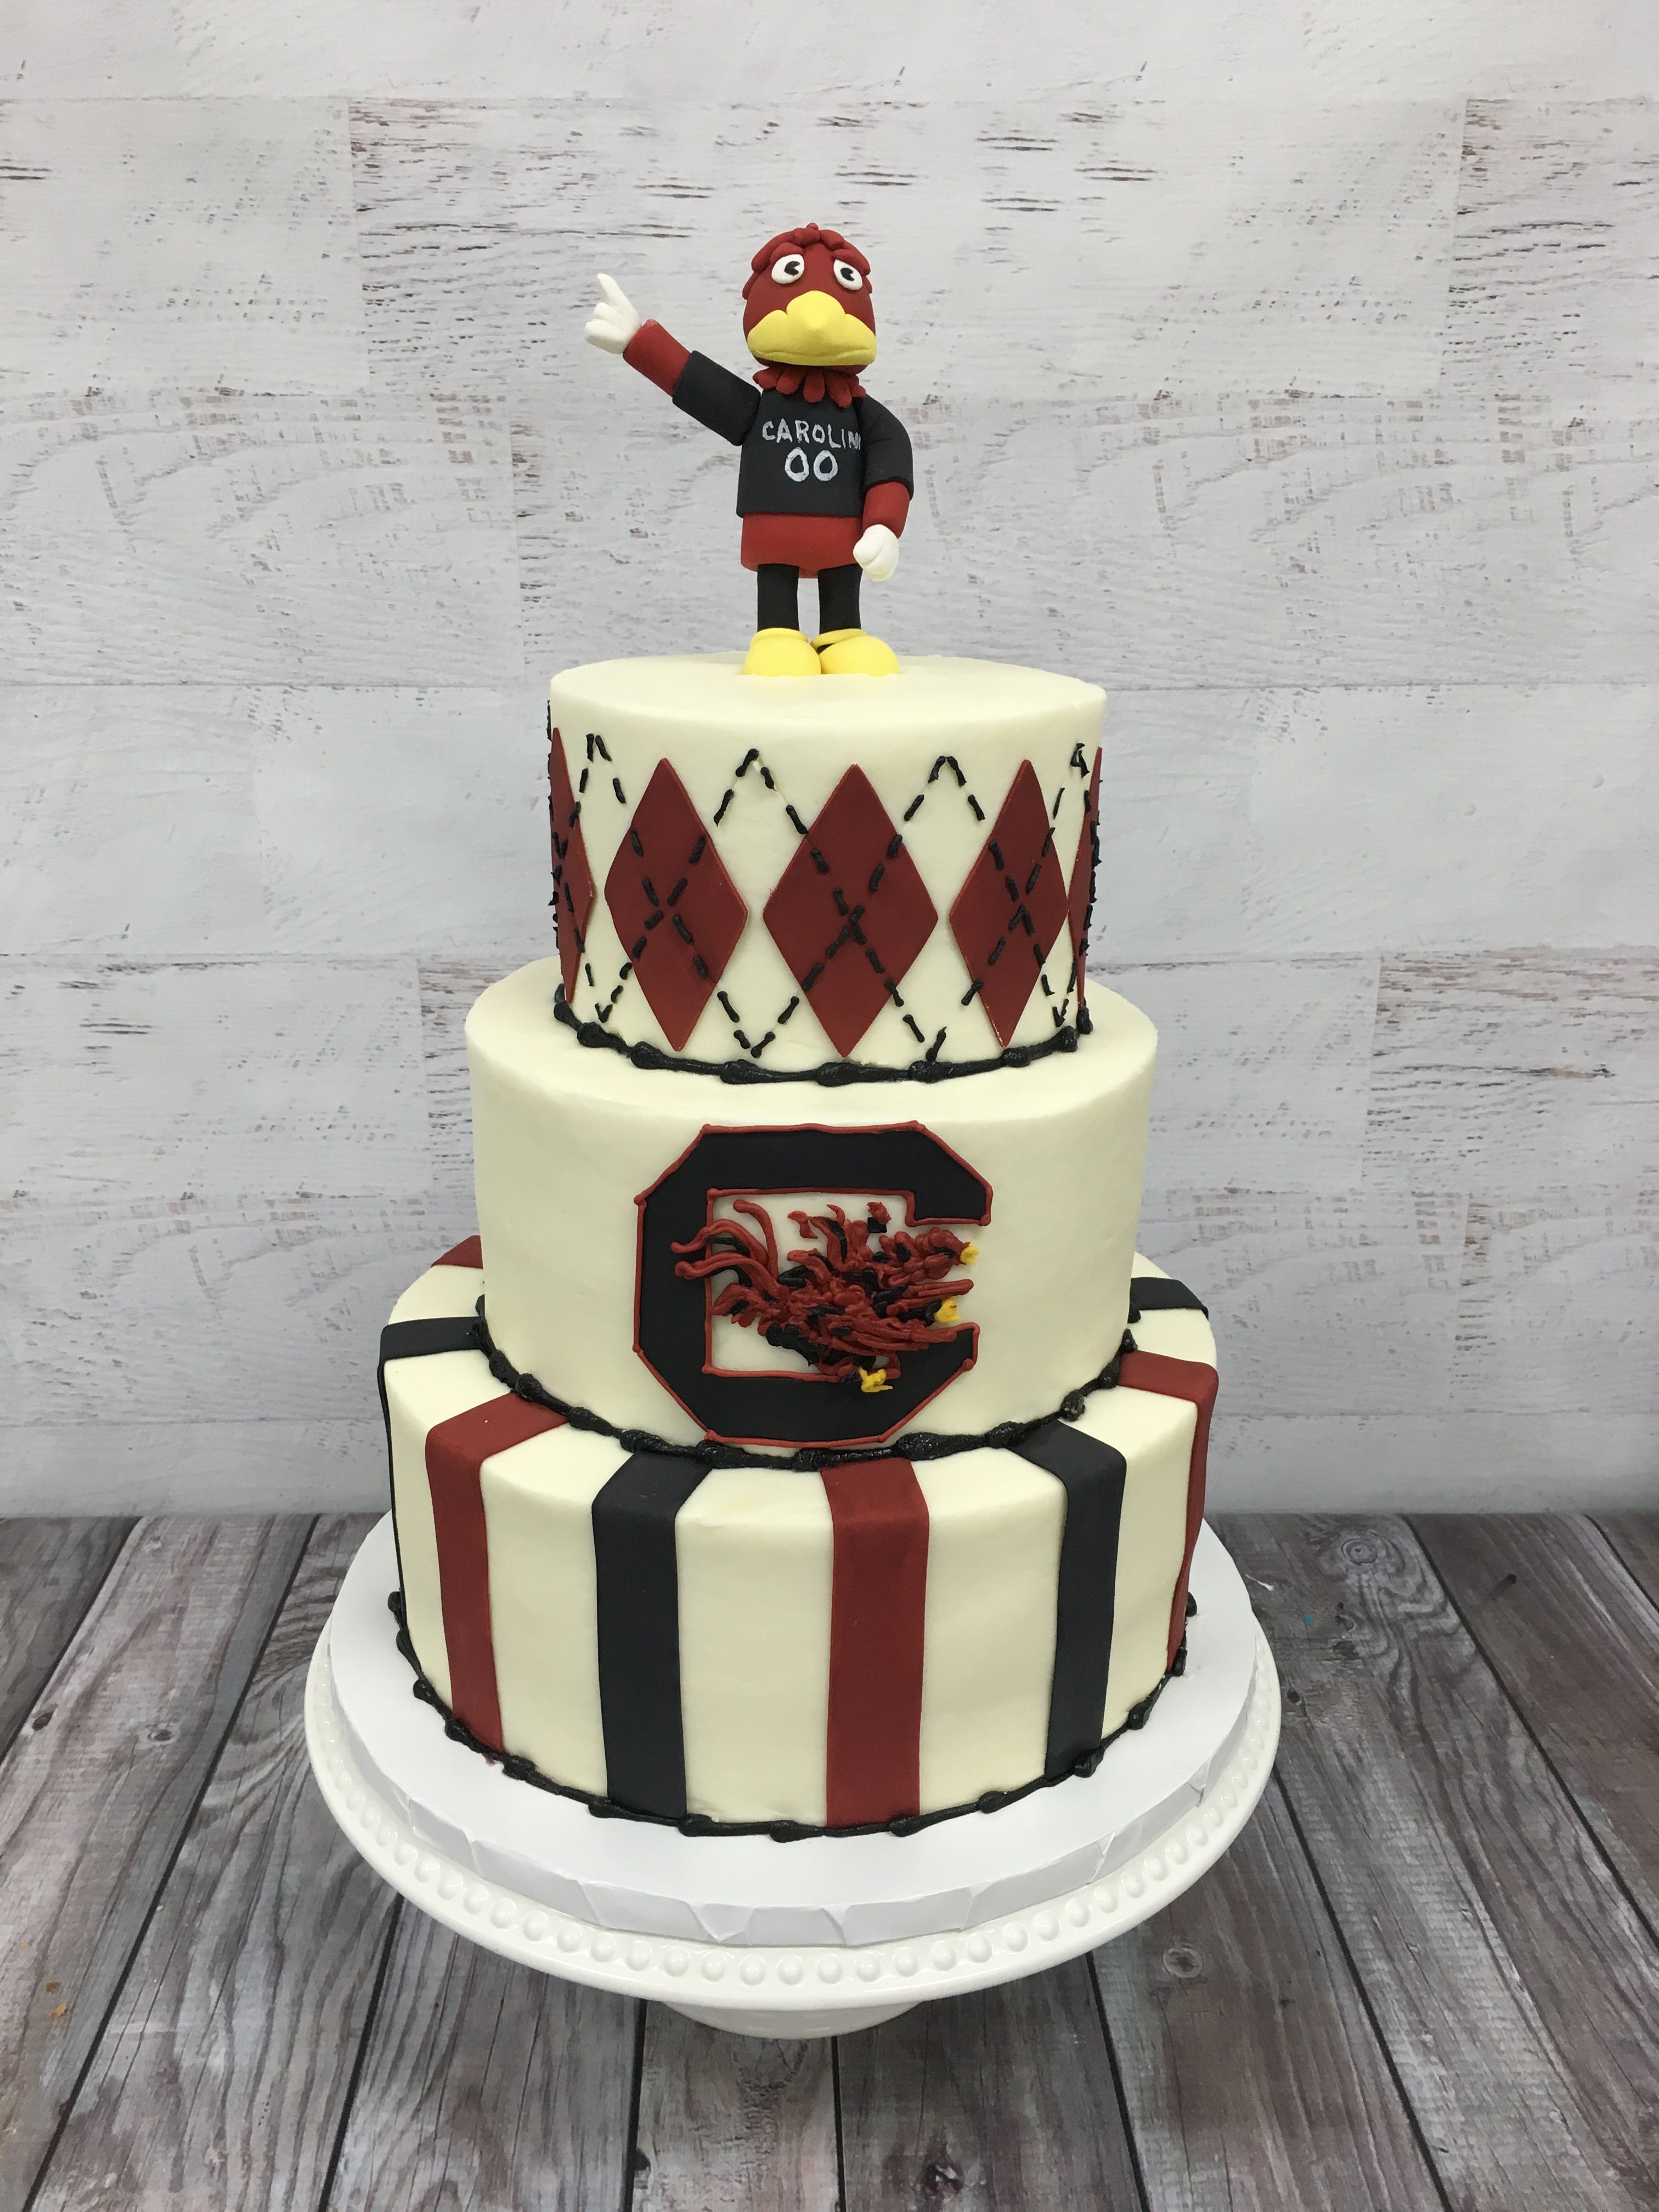 Graduation cakes image by edible art cake shop on cakes